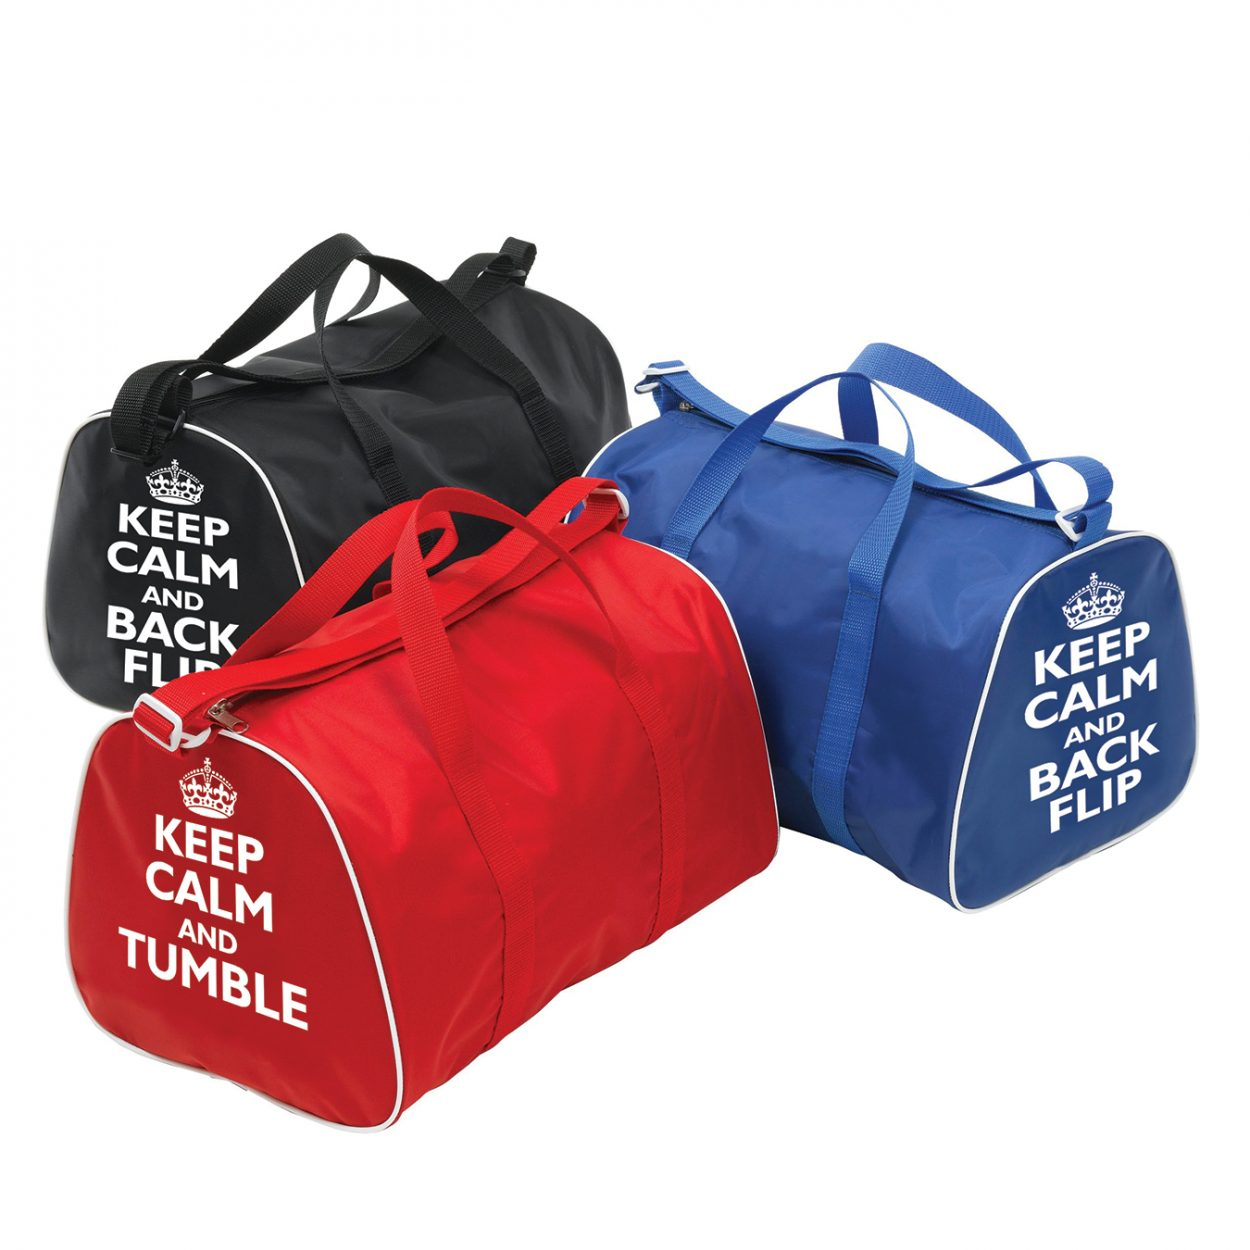 Holdall-Bags-With-Keep-Calm-and-Tumble-Bags-Holdalls Tappers and Pointers